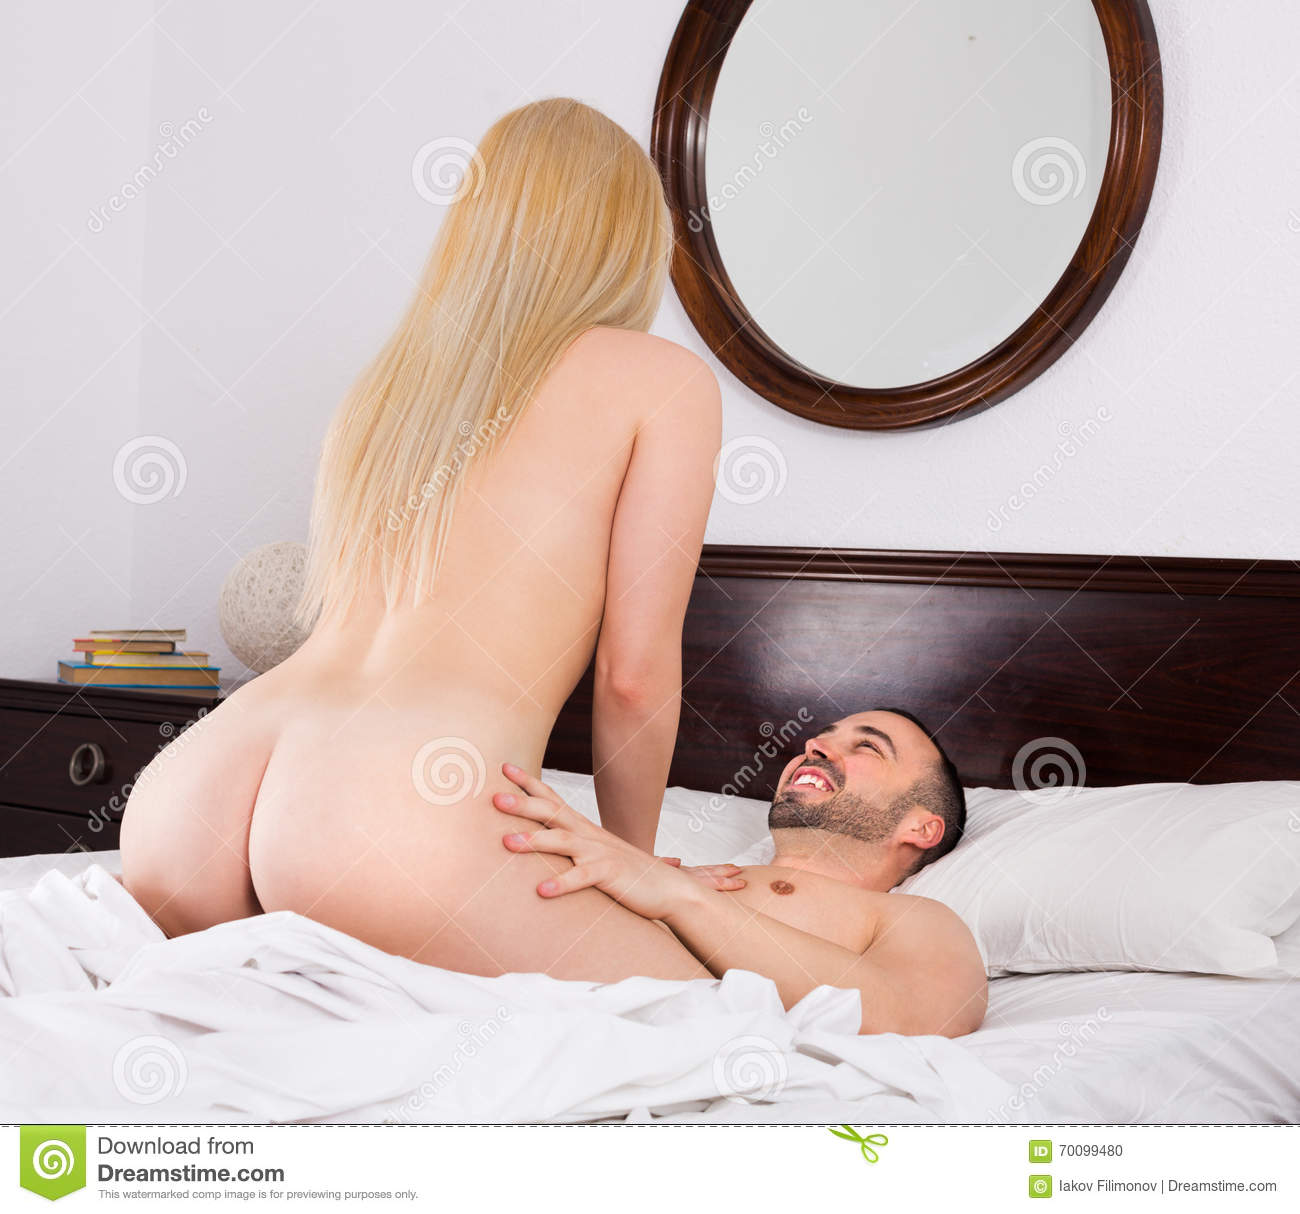 nude image of couple haveing sex